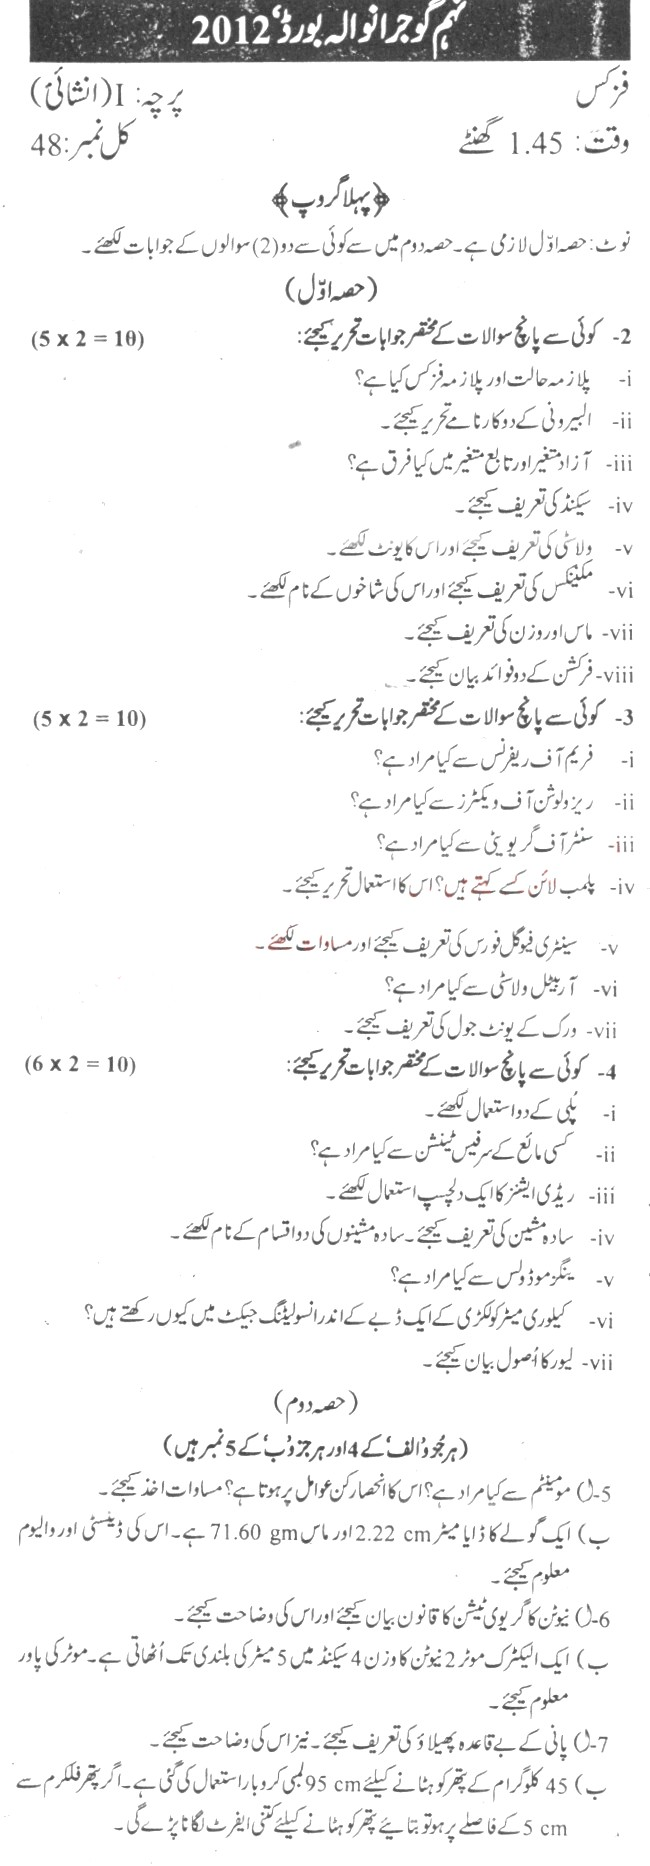 intermediate past papers gujranwala board Bise gujranwala 12th class past papers of all subjects of english & urdu medium you can get here gujranwala board matric 12th class past of intermediate and.